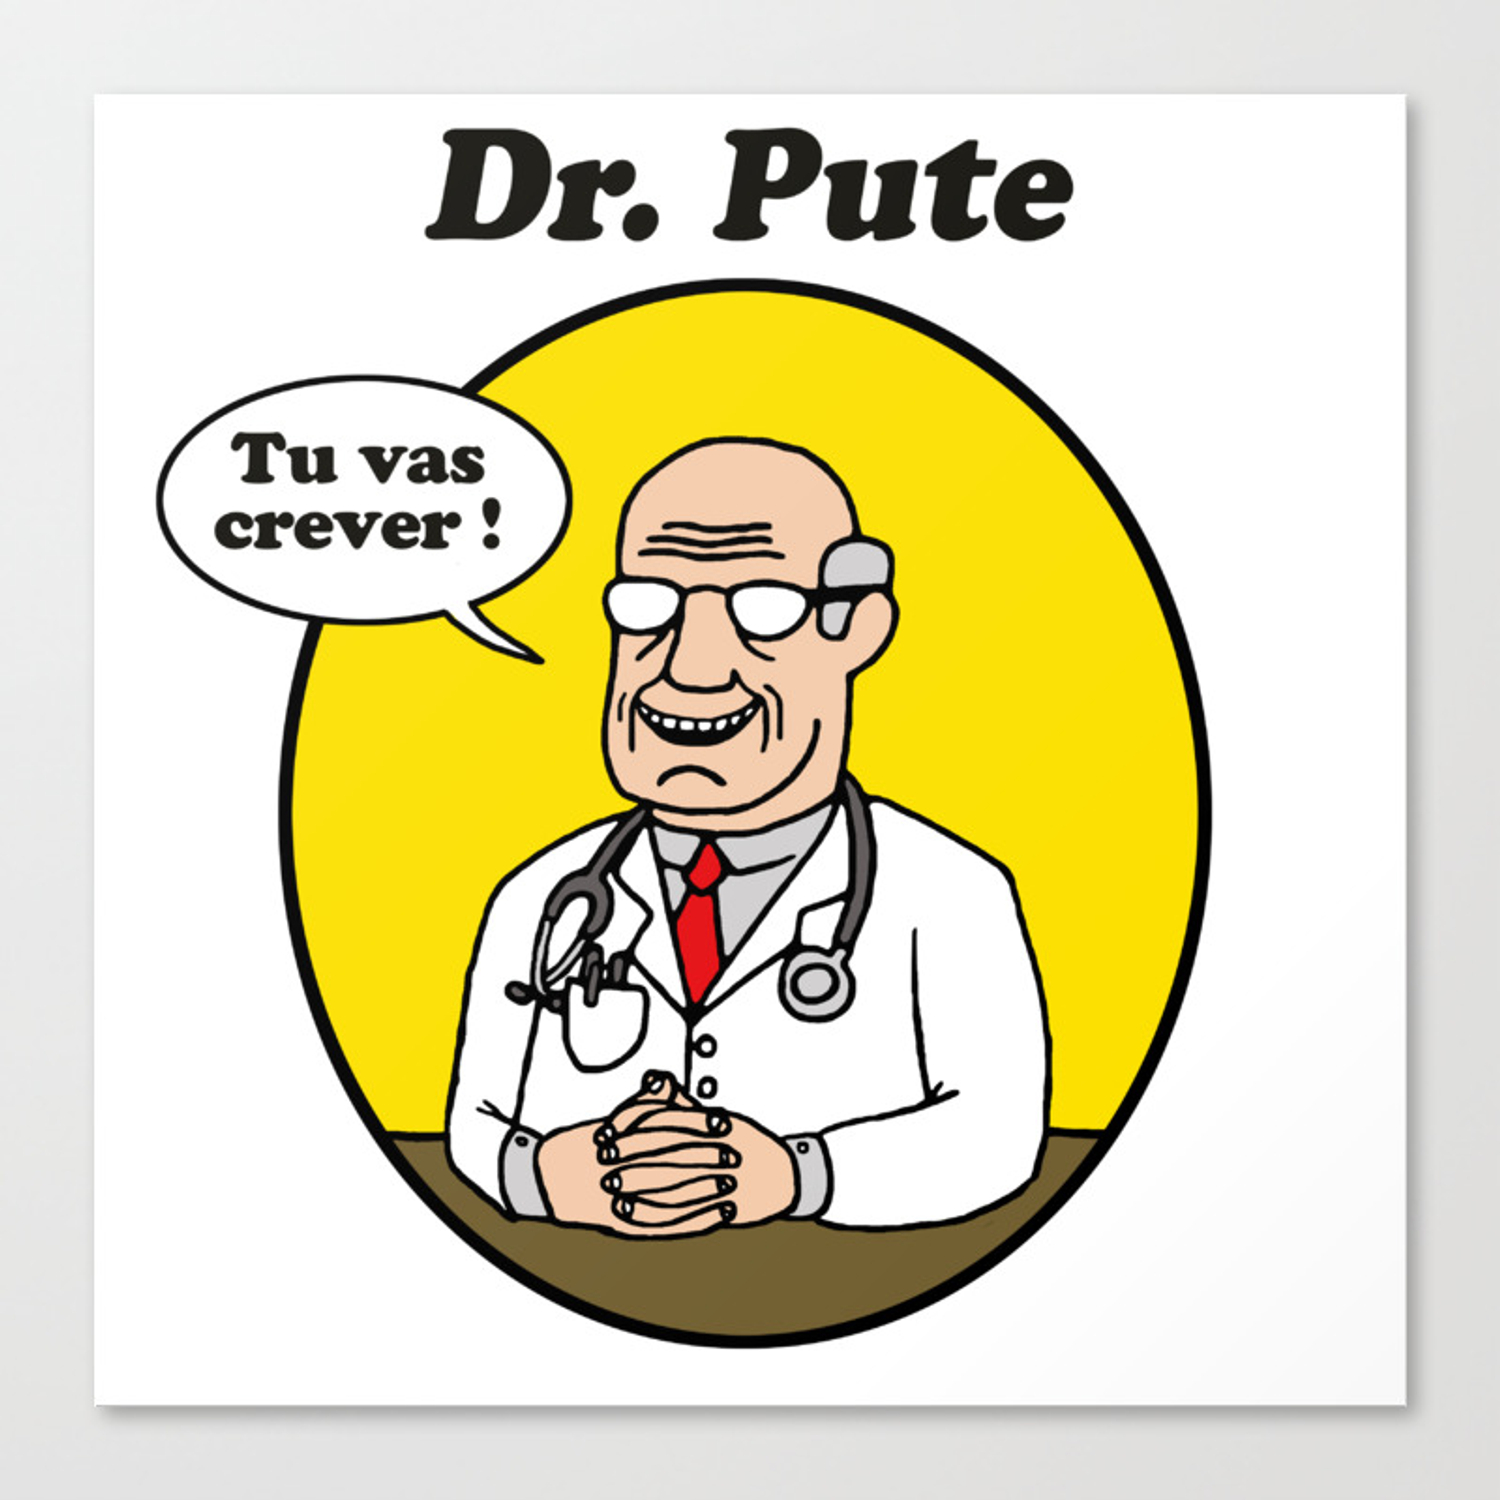 Dr. Pute sur fond blanc Canvas Print by gloryowl | Society6